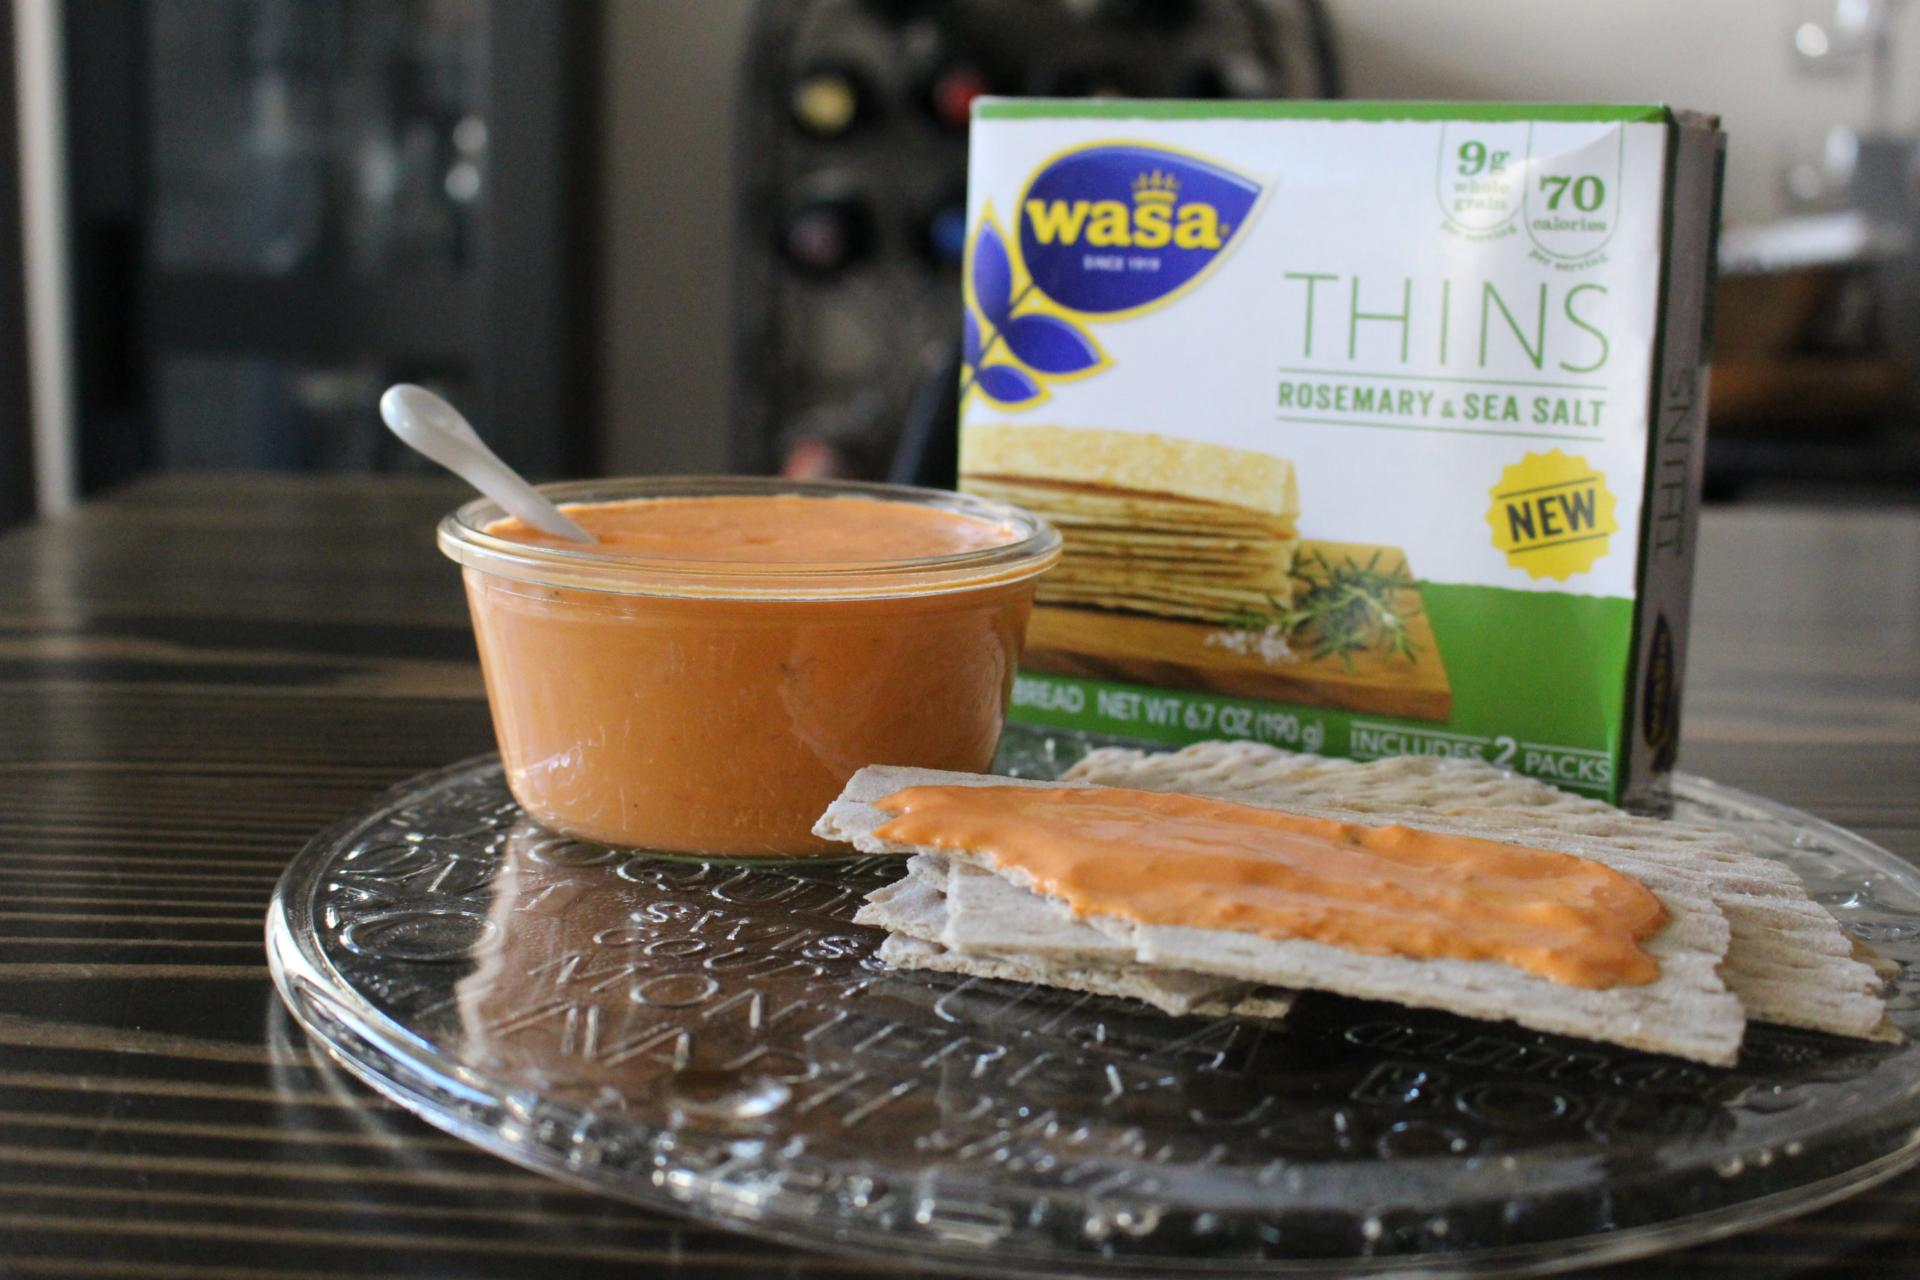 SAUCES AND SPREADS: Roasted Red Pepper Goat Cheese Spread with Wasa